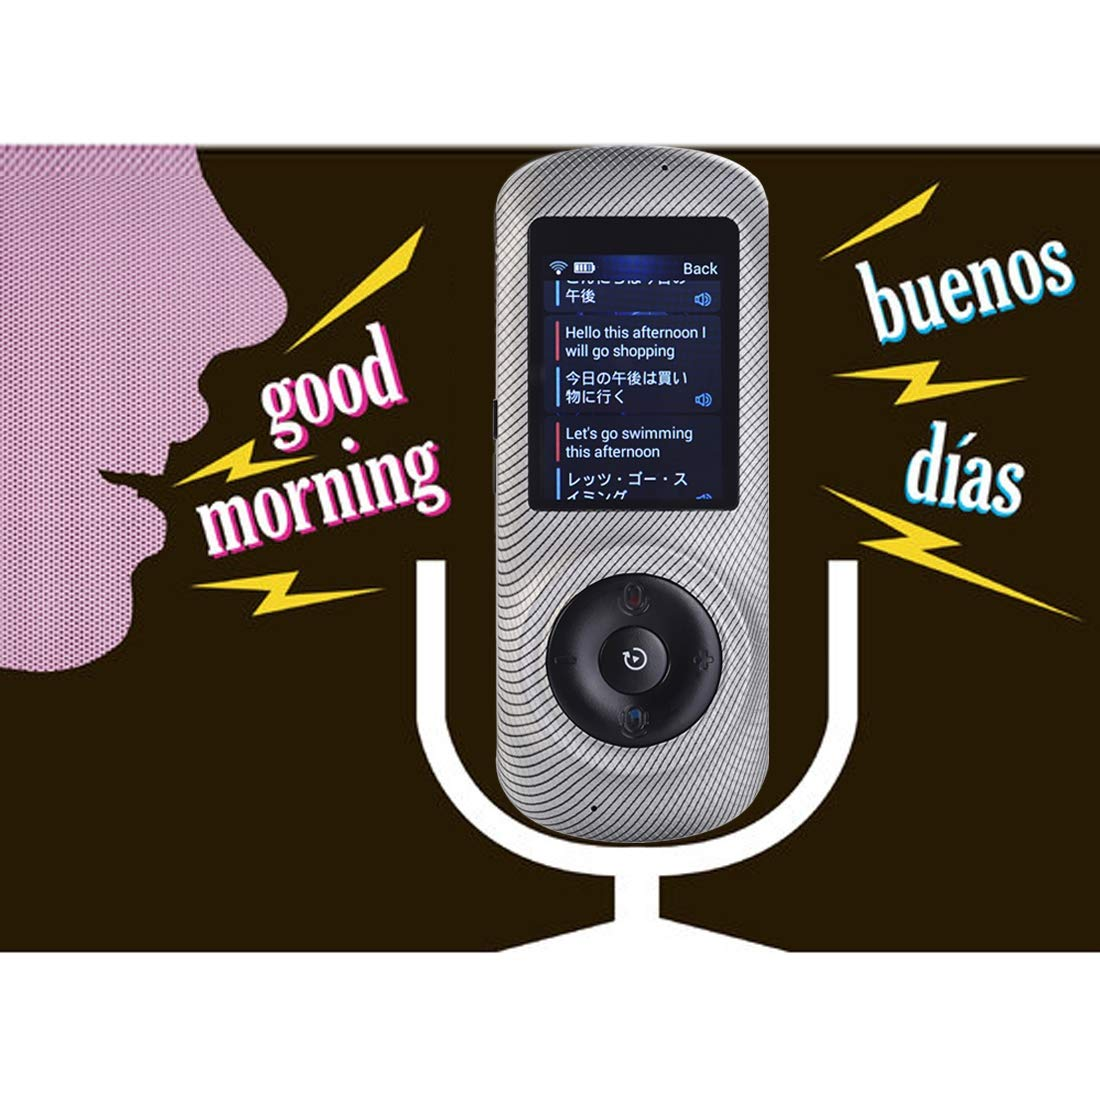 Instant Voice Translator Device Translation 45 Languages Smart 2 Way WiFi 2.4inch IPS Capacitive Touch Screen by Aspiring (Image #3)